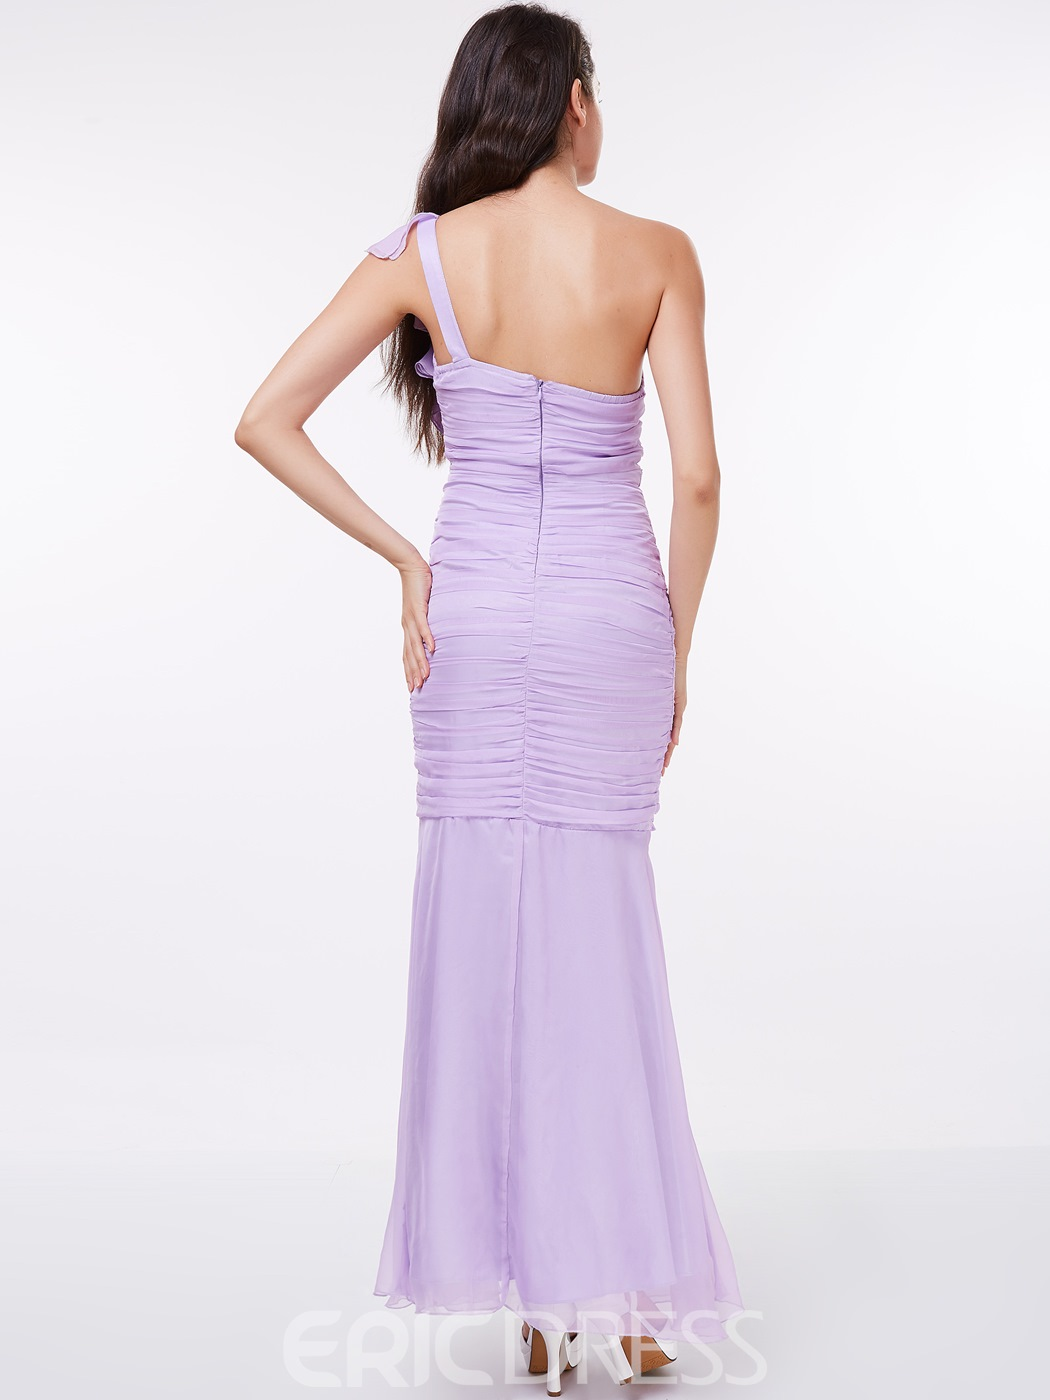 Ericdress Sheath One Shoulder Ruffles Evening Dress